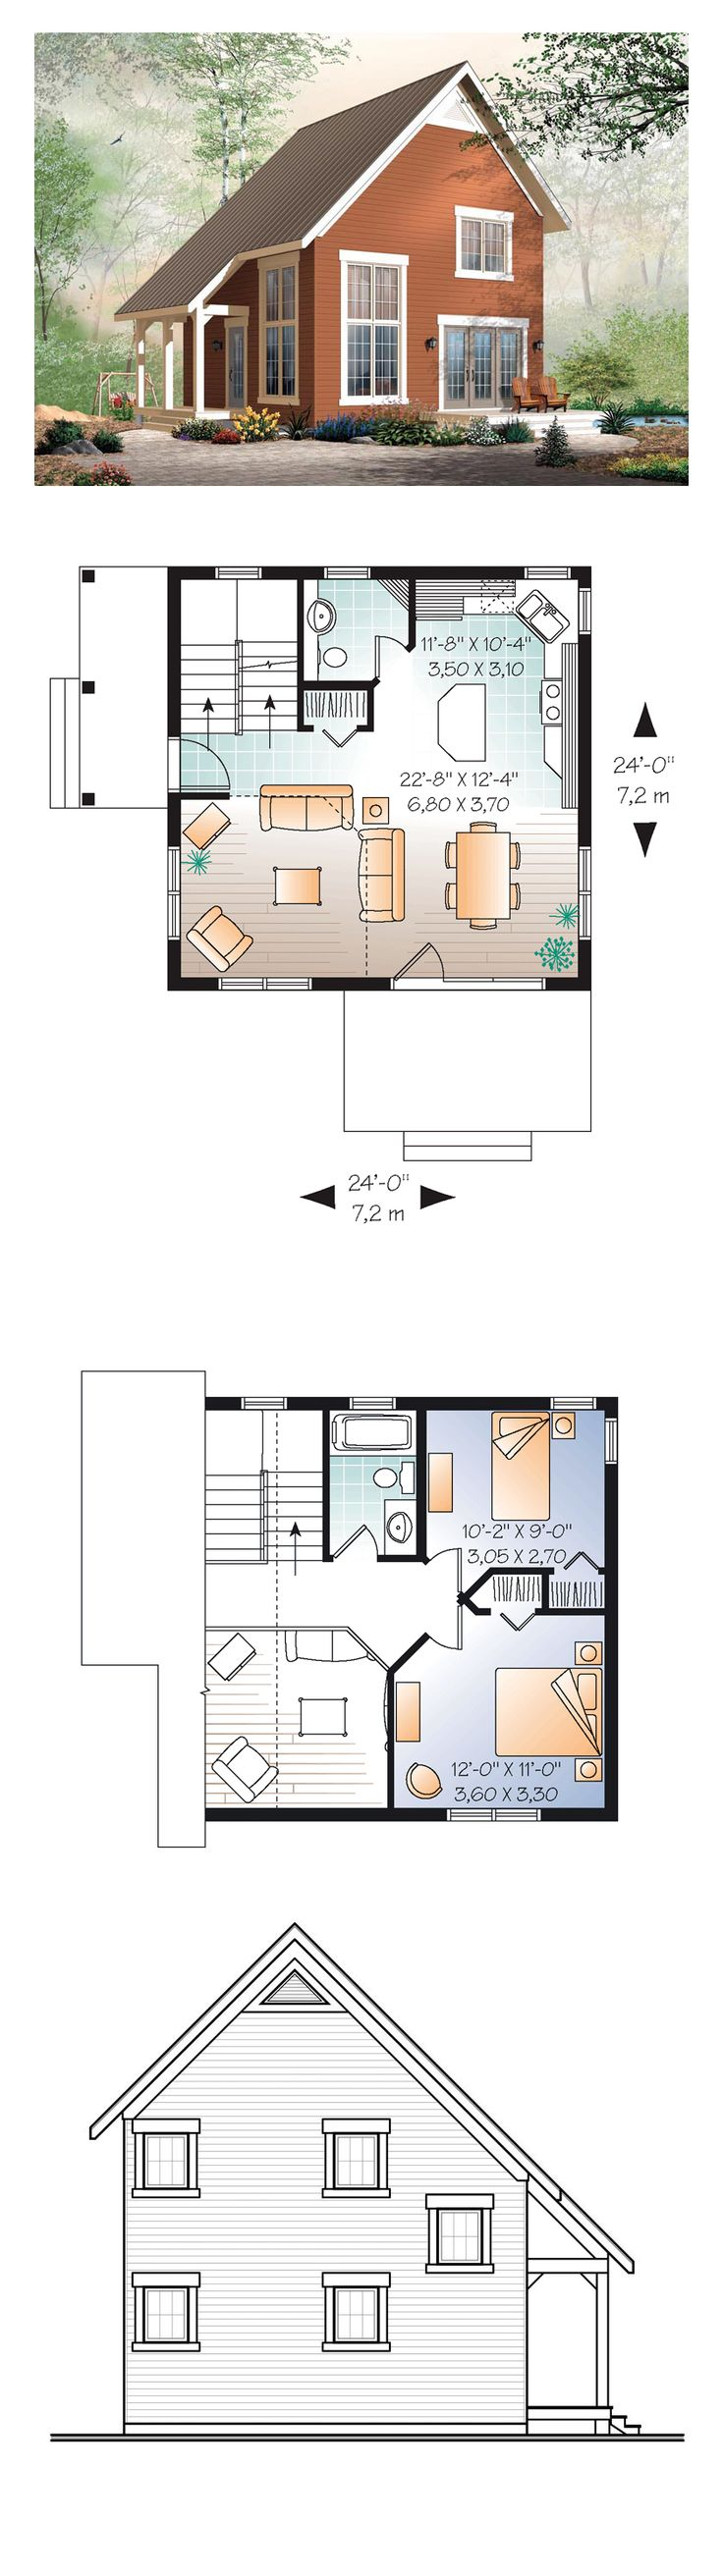 Narrow lot house plan 76149 total living area 1050 sq ft 2 bedrooms and 1 5 bathrooms - Narrow house plan paint ...